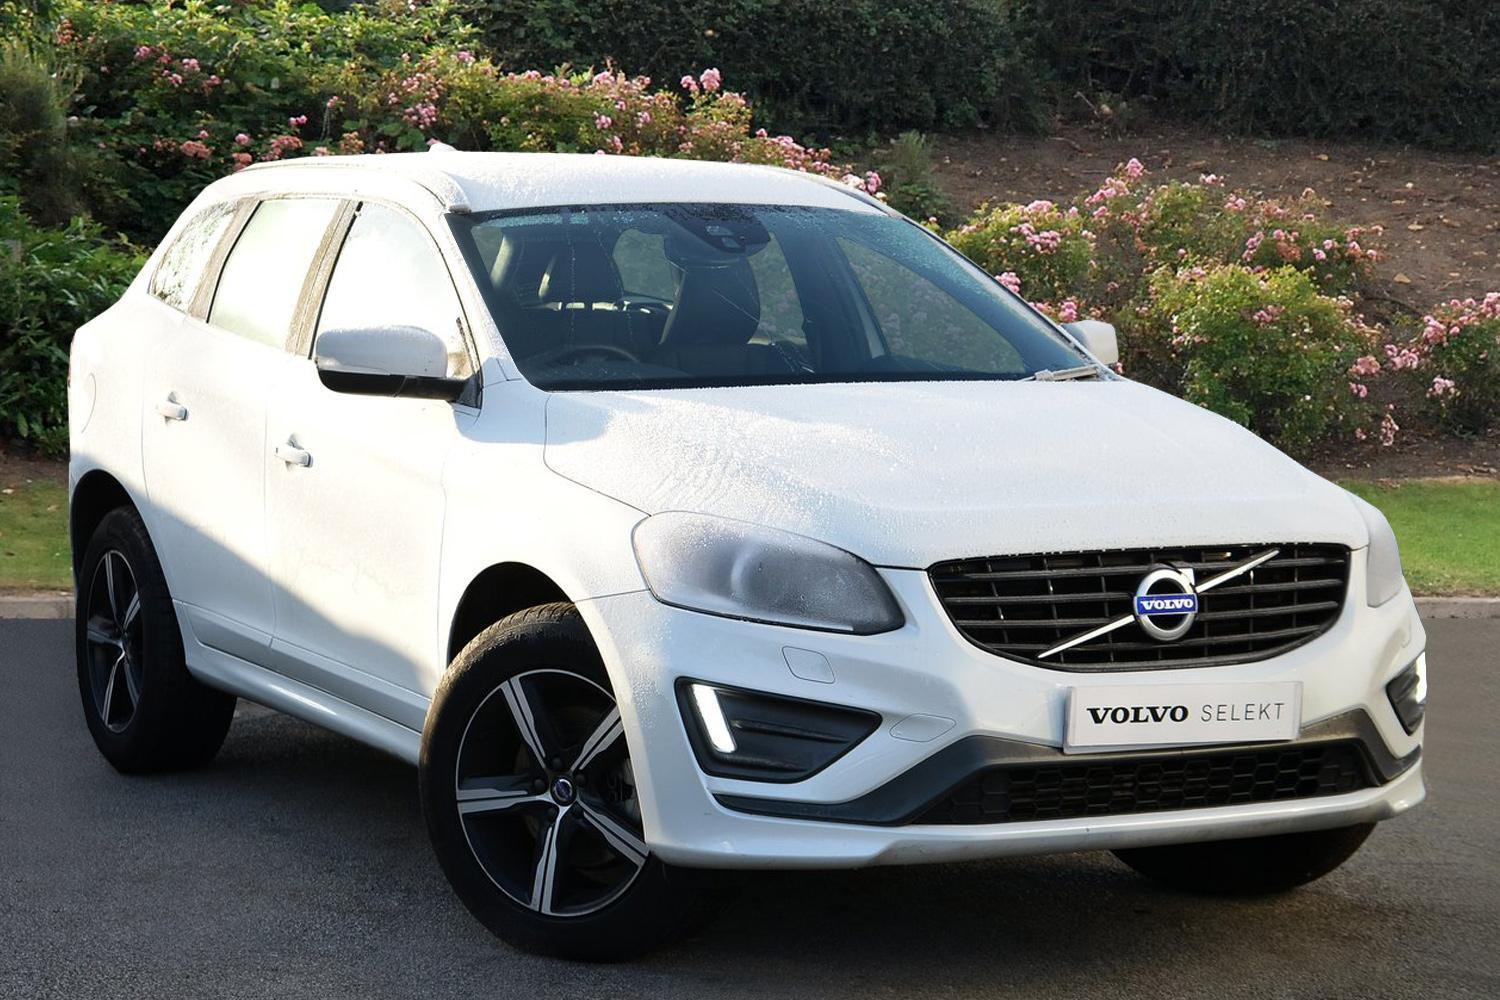 used volvo xc60 d4 190 r design lux nav 5dr awd geartronic diesel estate for sale bristol. Black Bedroom Furniture Sets. Home Design Ideas